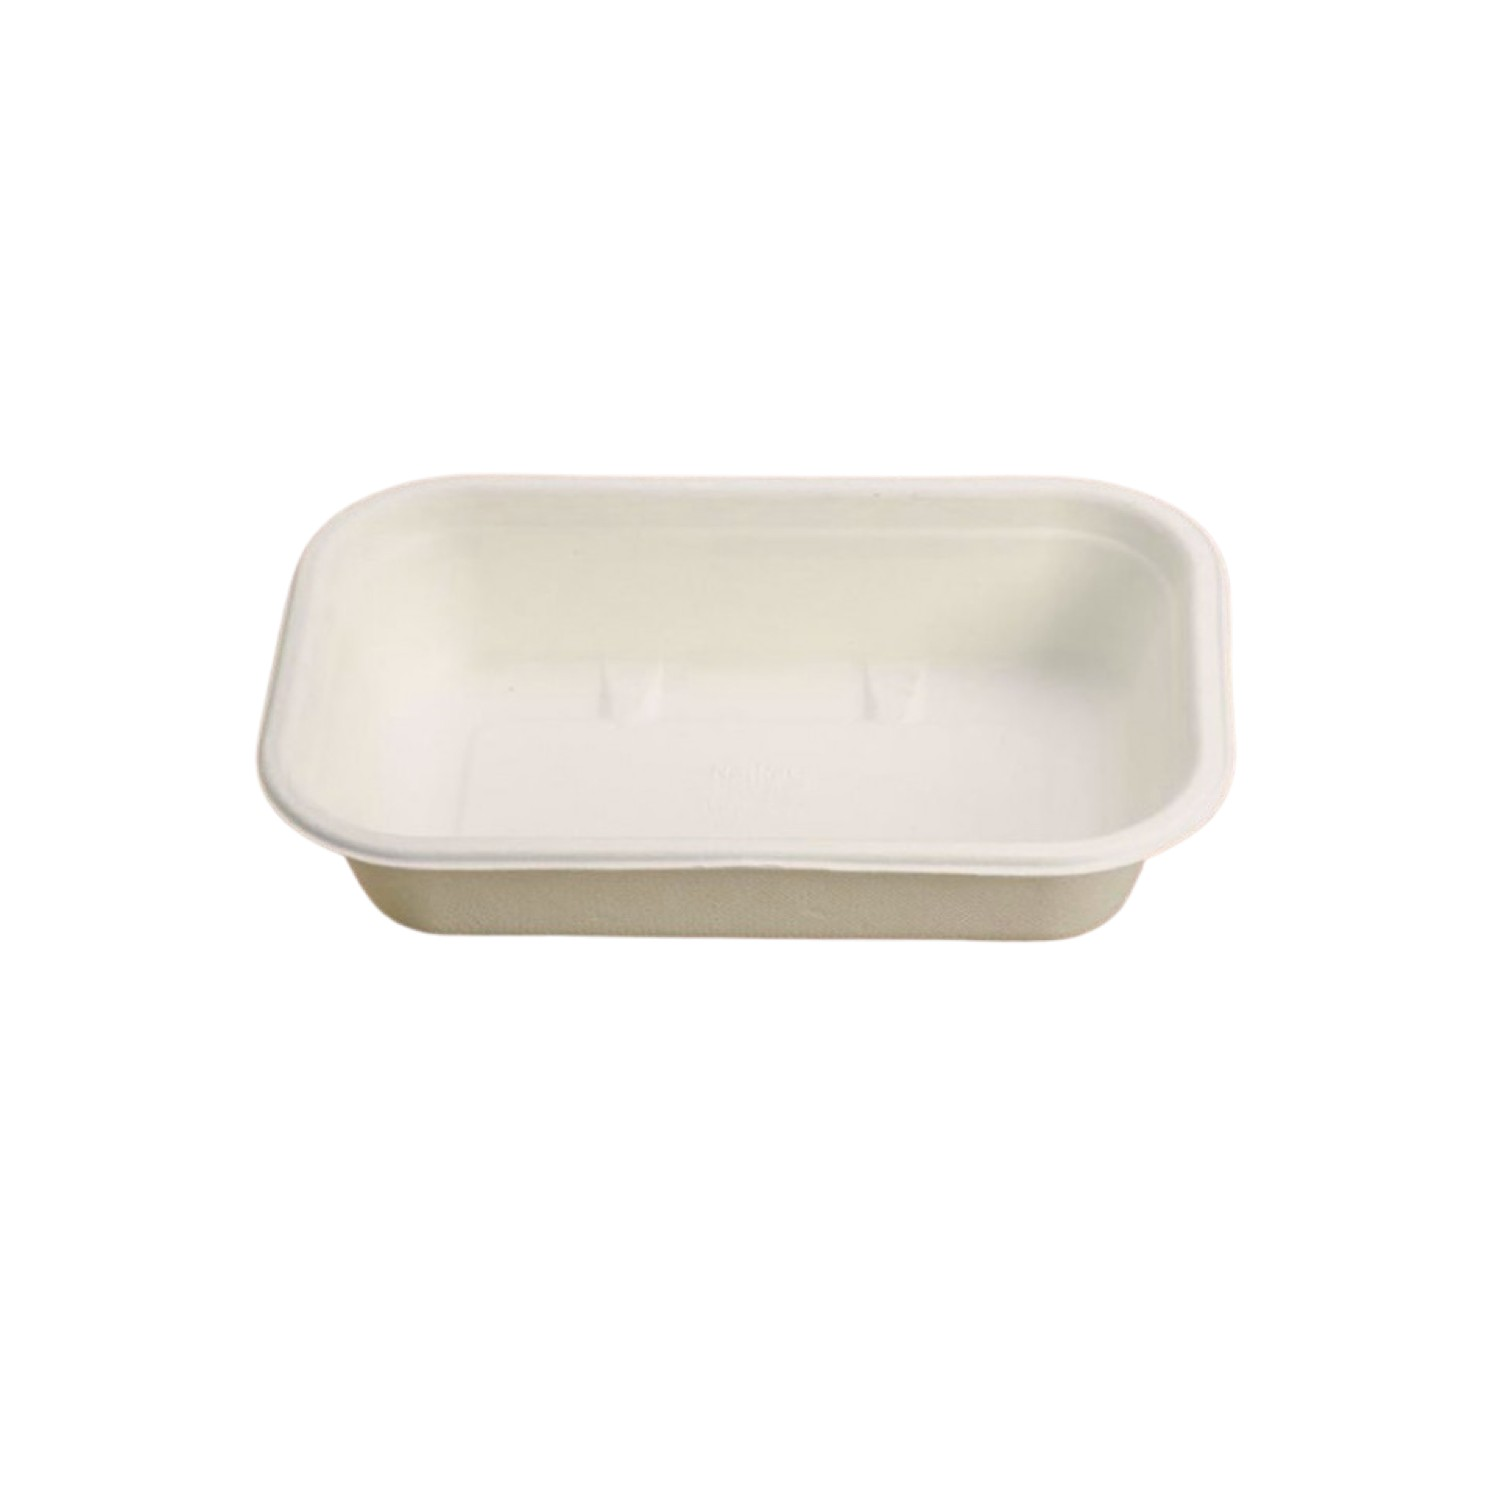 Food tray 650 ml (2 portions)